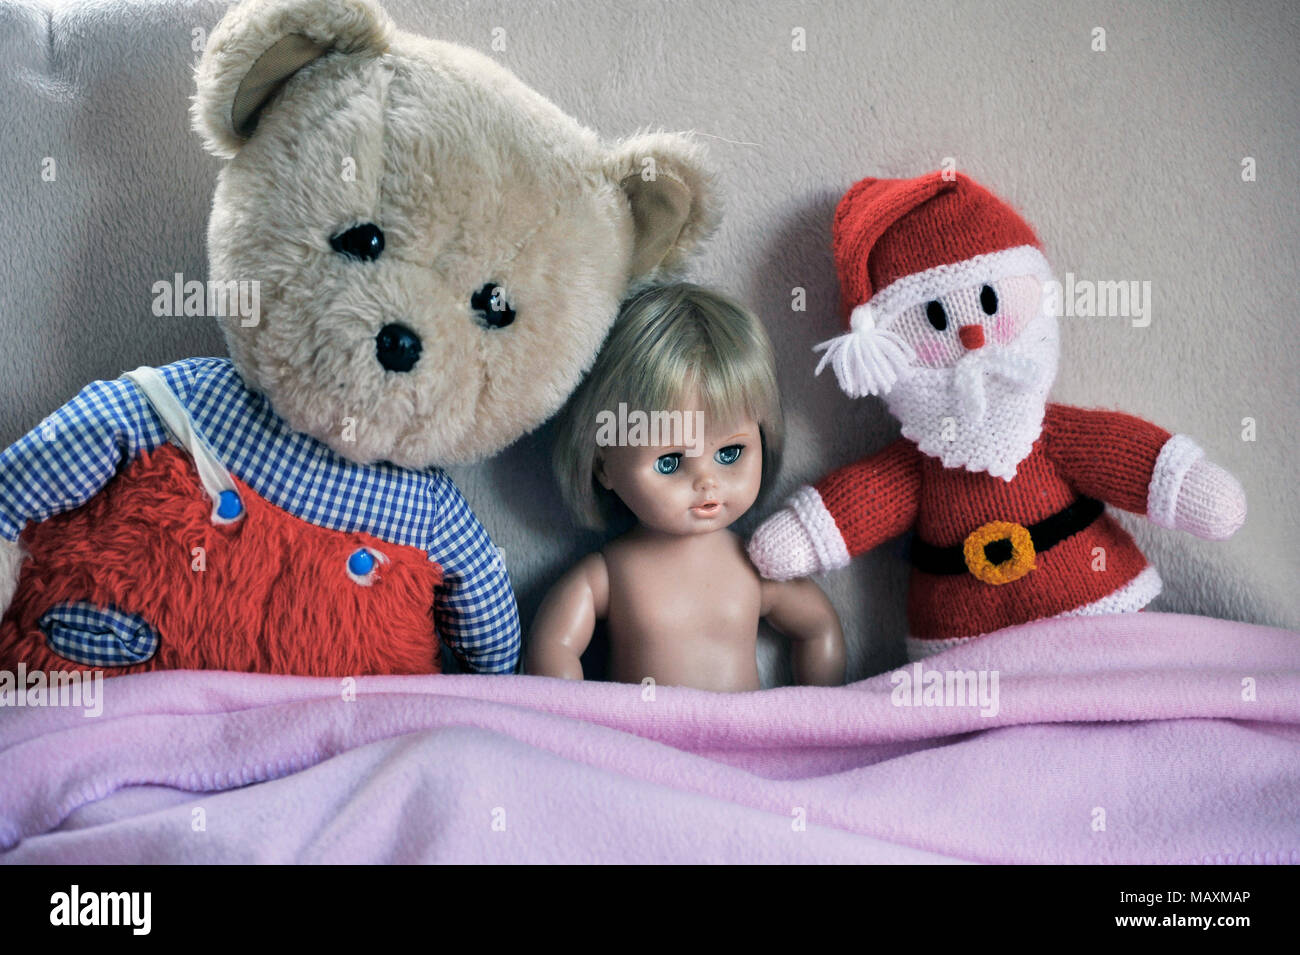 childs toys sitting together - Stock Image